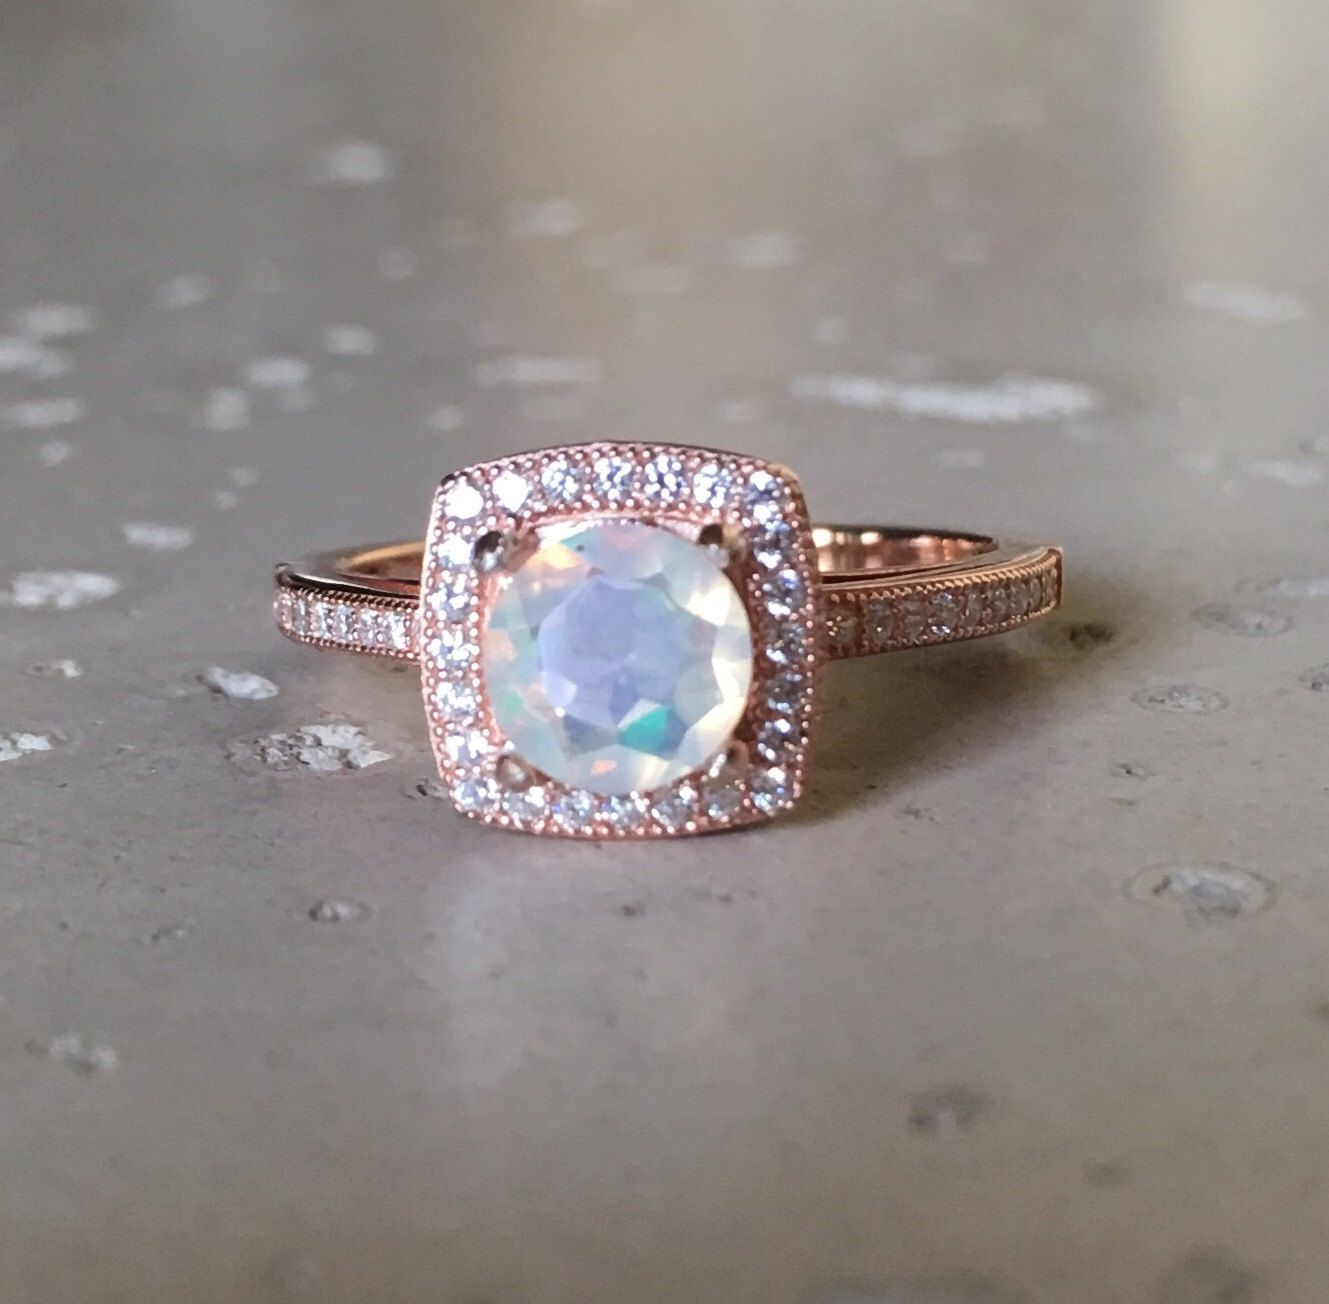 Rose Gold Opal Engagement Ring Unique Opal Promise Ring October  Birthstone Ring Genuine Fire Opal Ring Nontraditional Engagement Ring